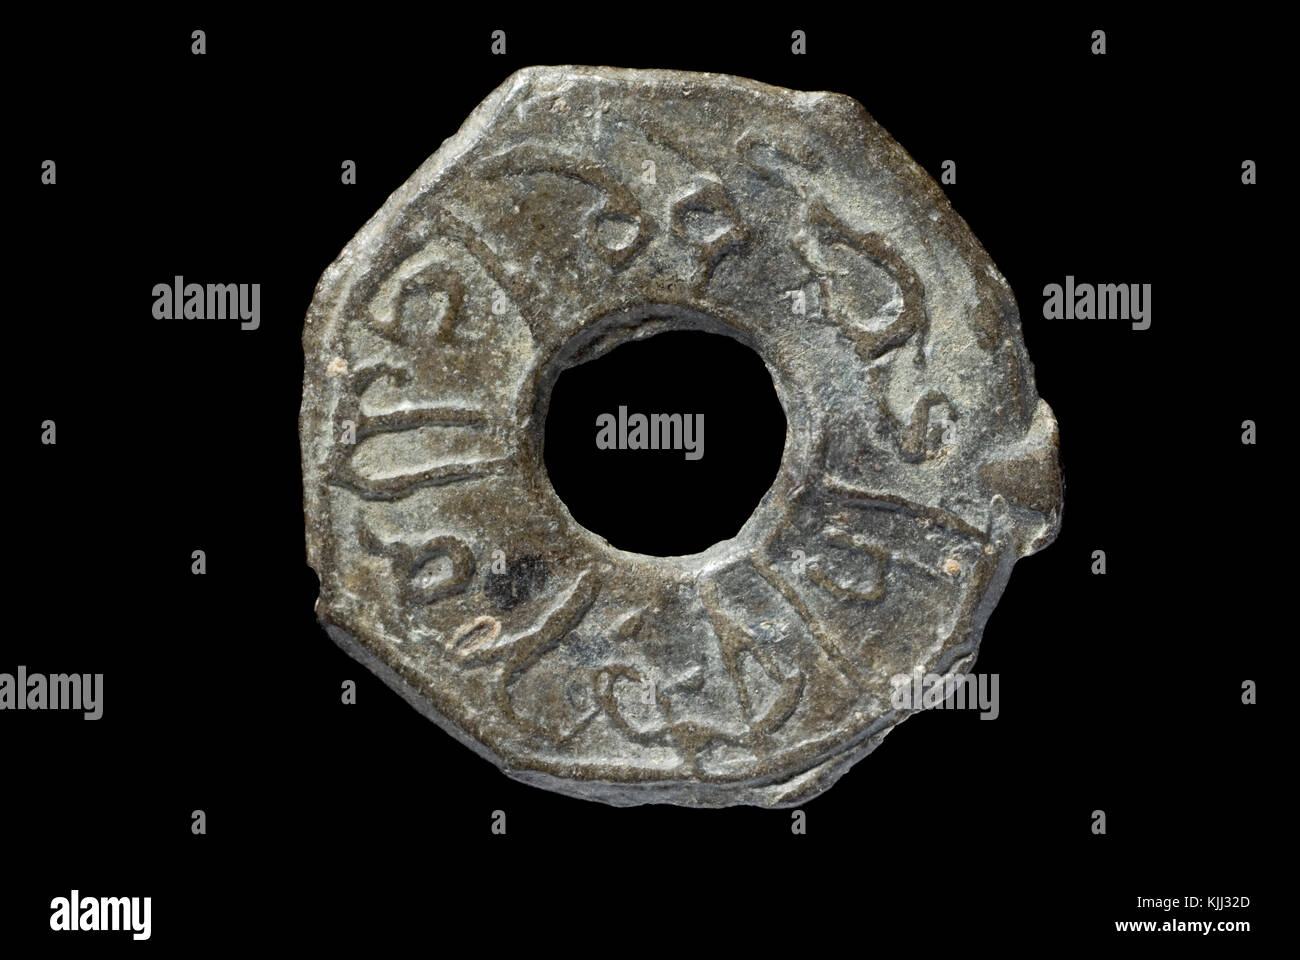 Coin of Palembang - Stock Image